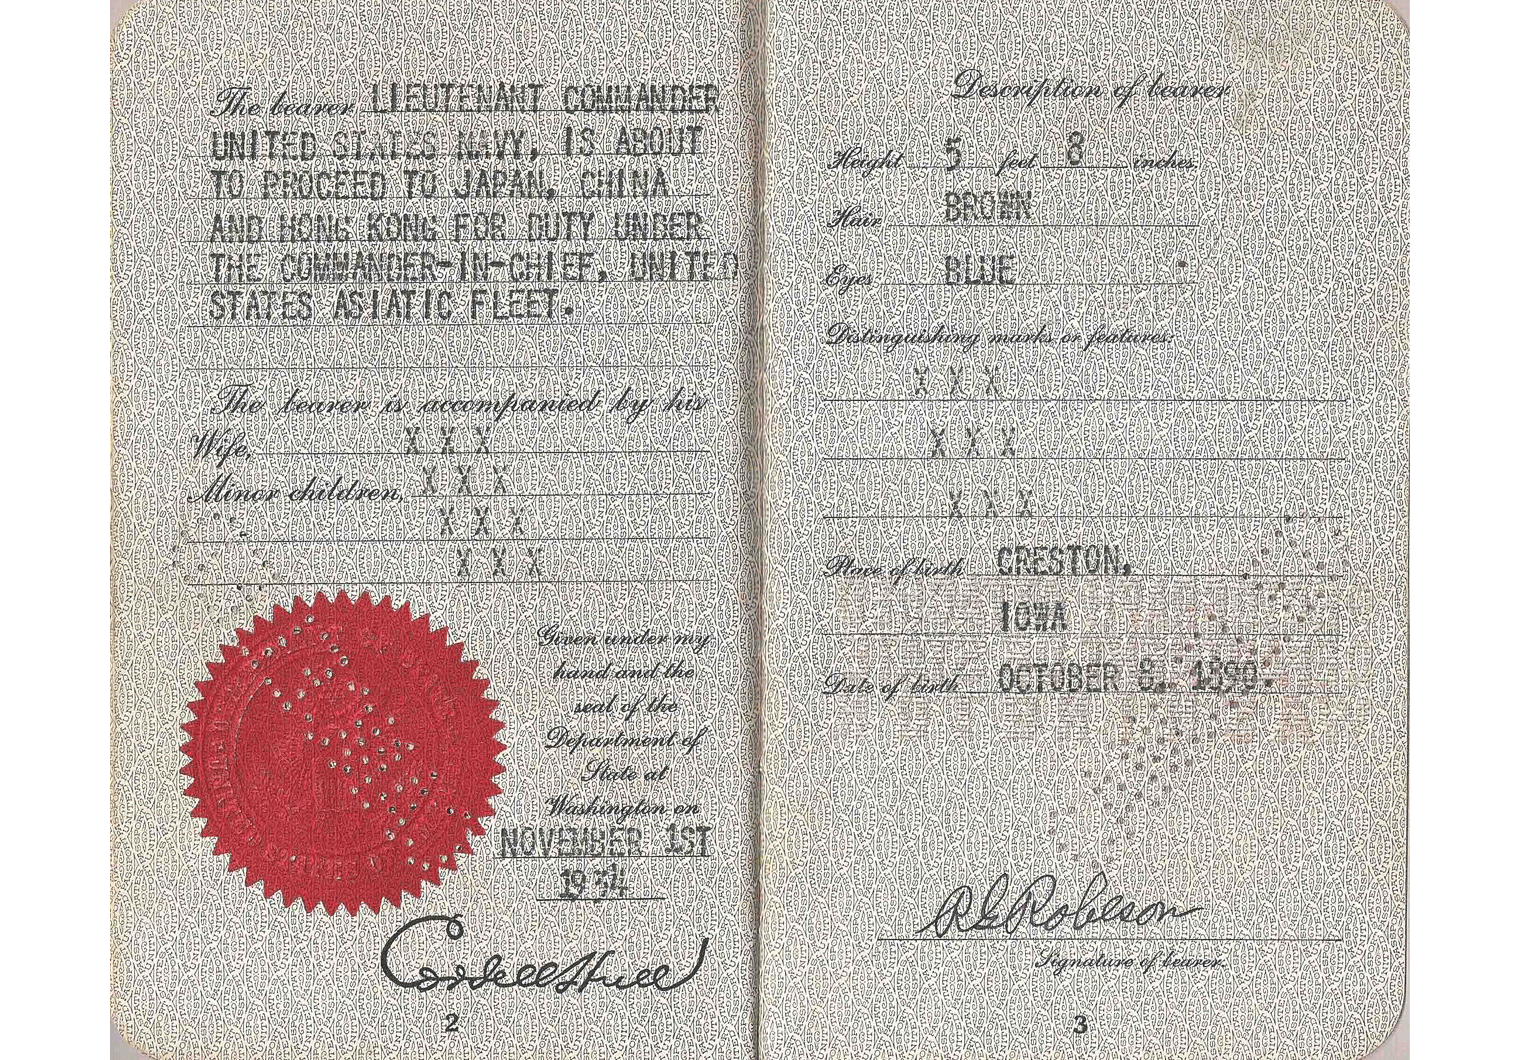 WW2 US Special passport.